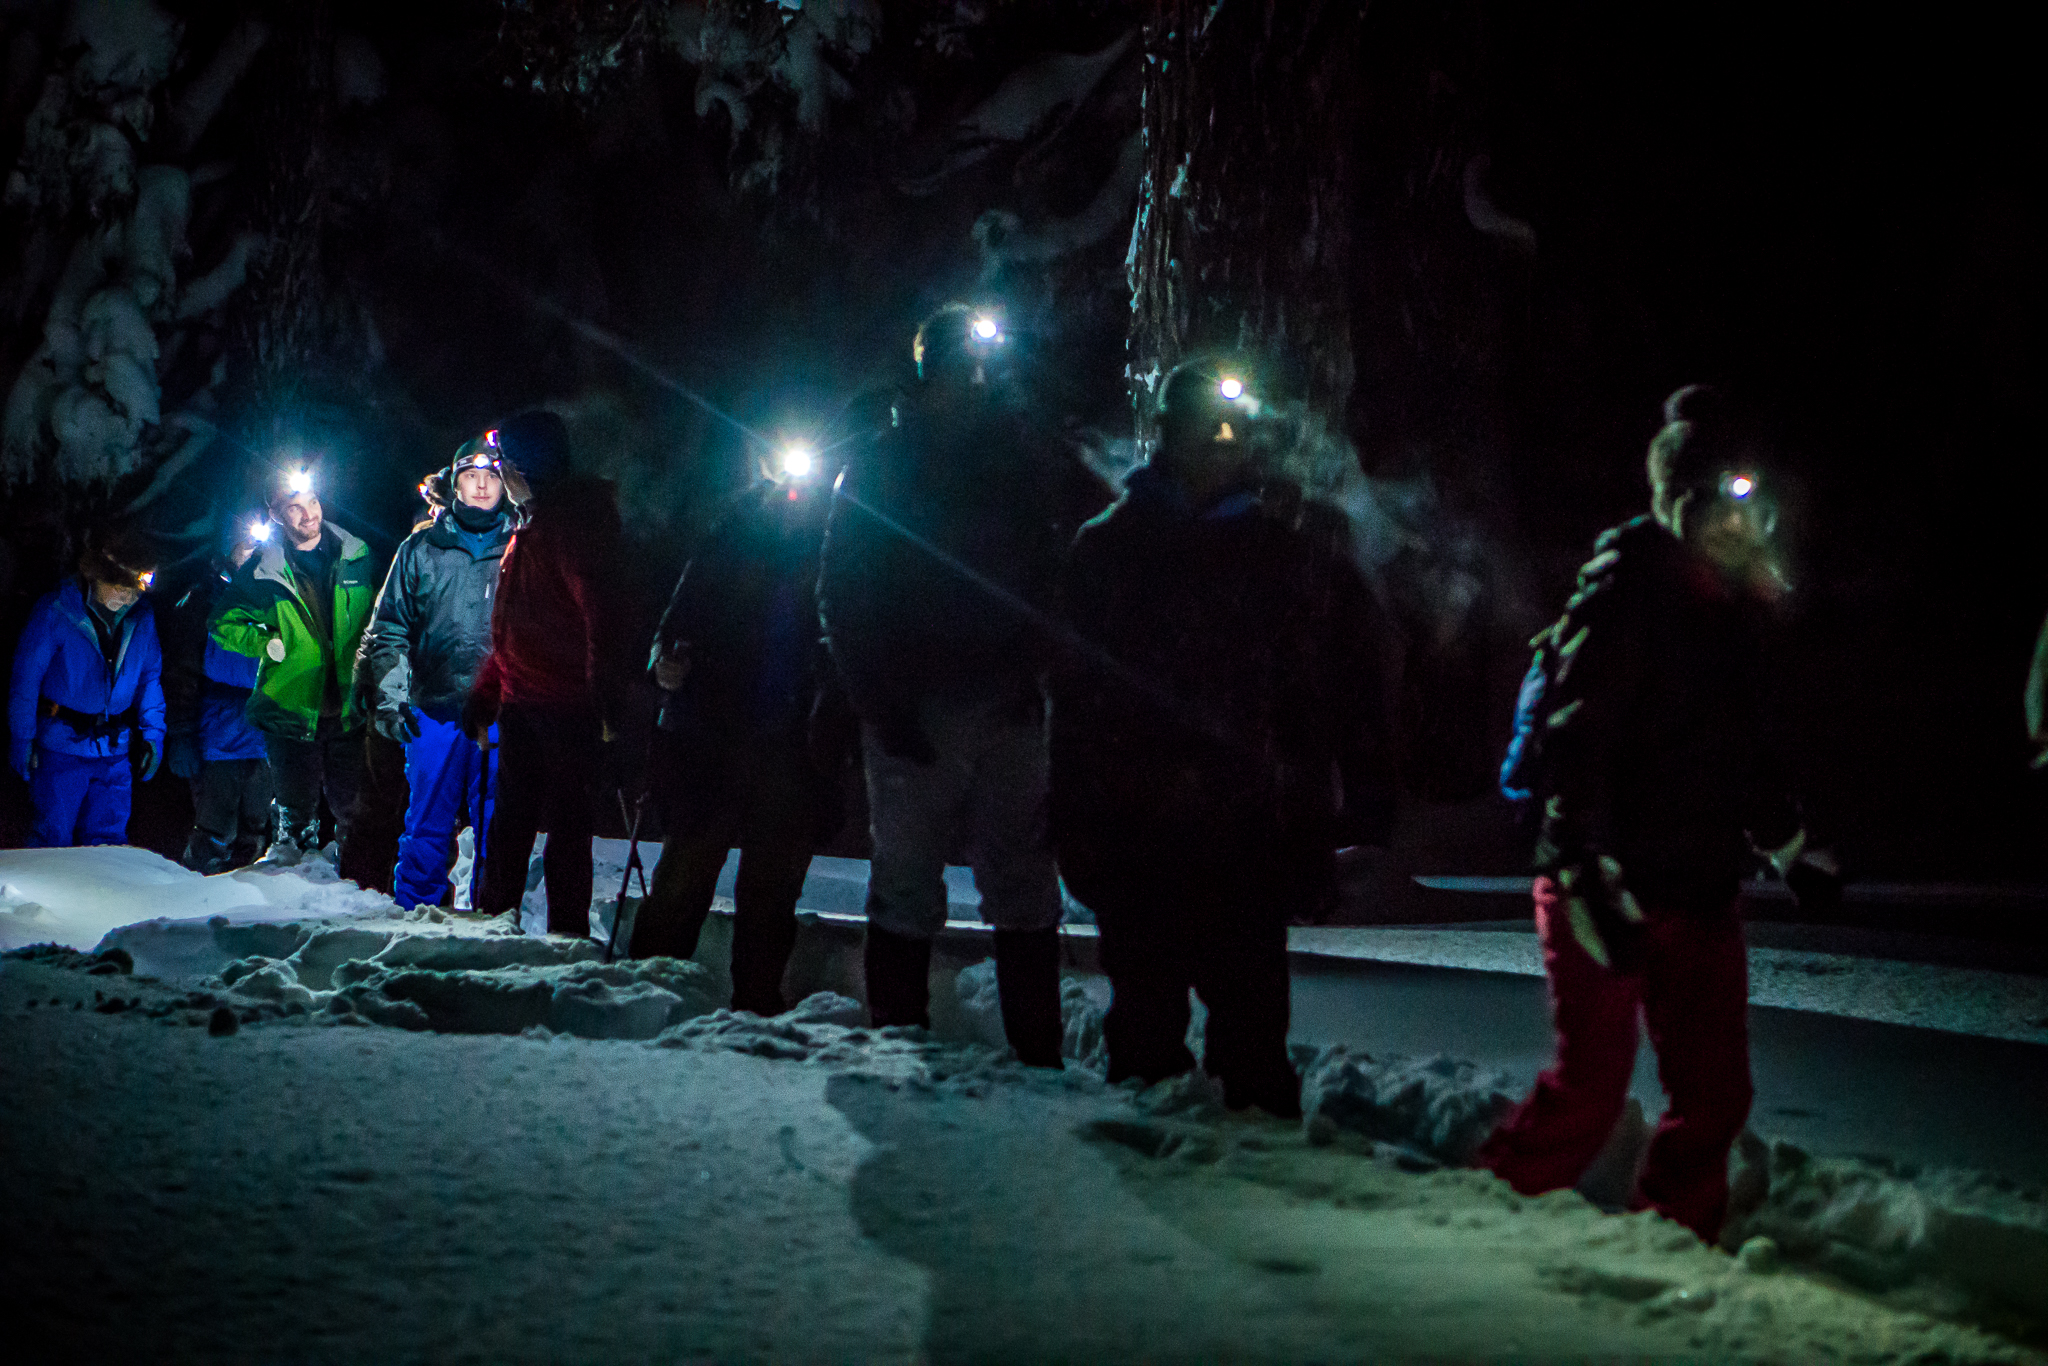 Snowshoe the mountain under the night sky and listen for woodland winter creatures on our Moonlight or Starlight Snowshoe Tour.